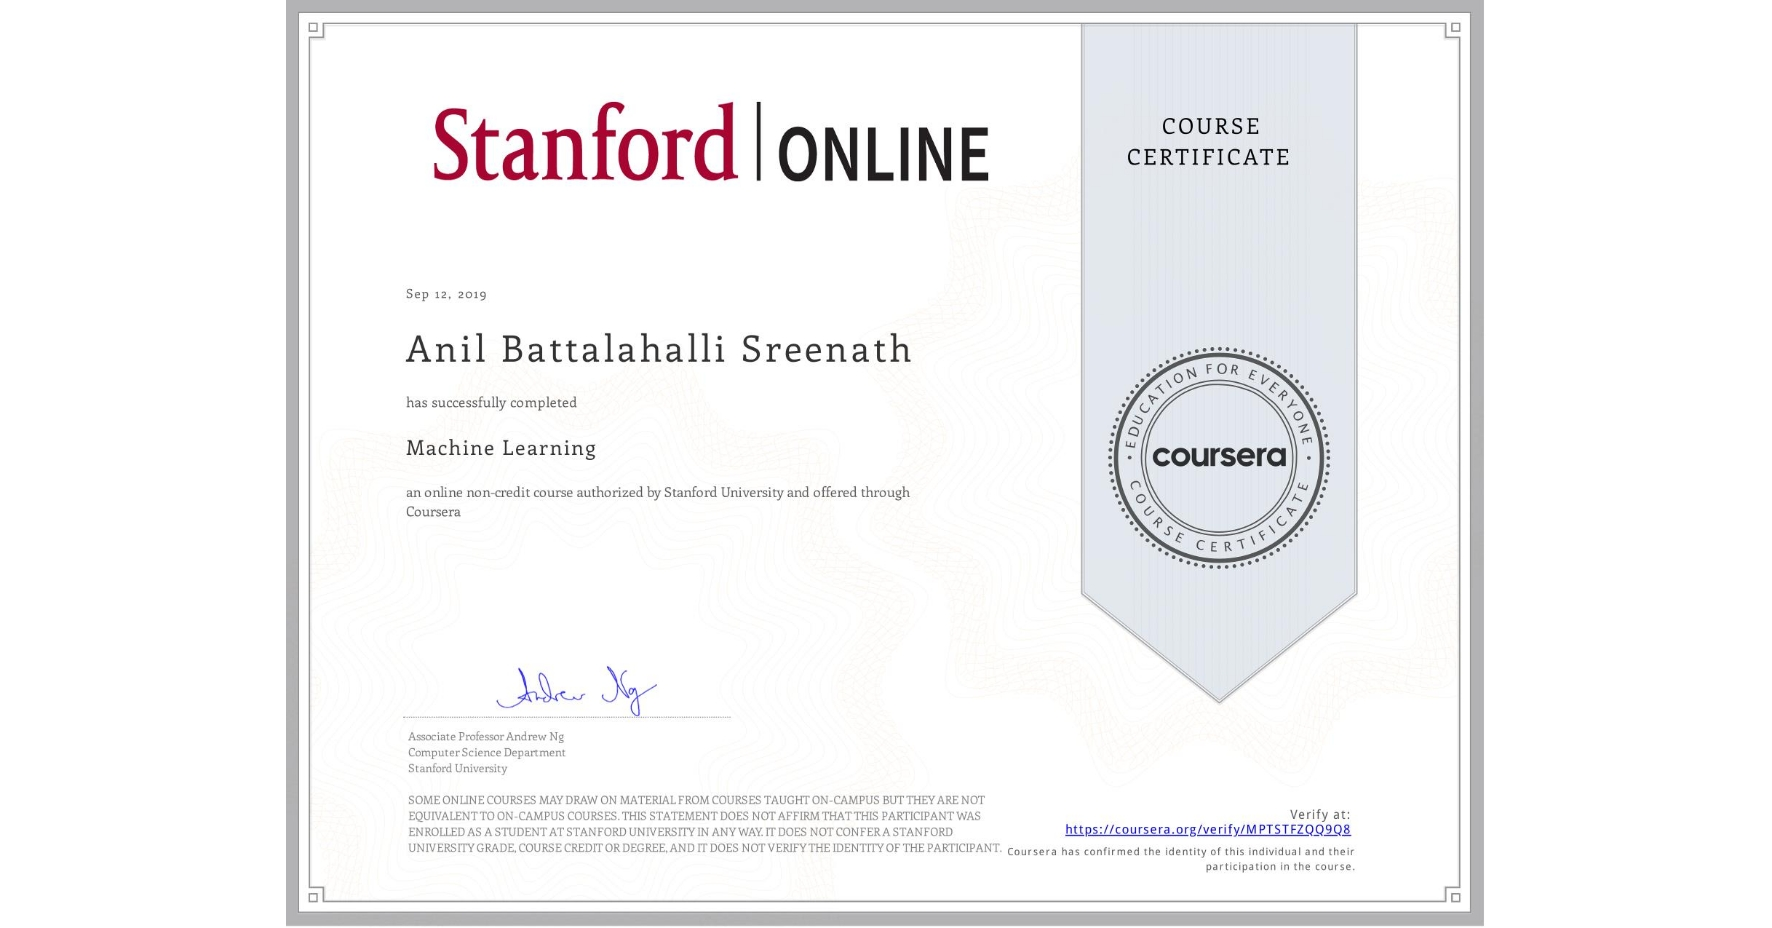 View certificate for Anil Battalahalli Sreenath, Machine Learning, an online non-credit course authorized by Stanford University and offered through Coursera